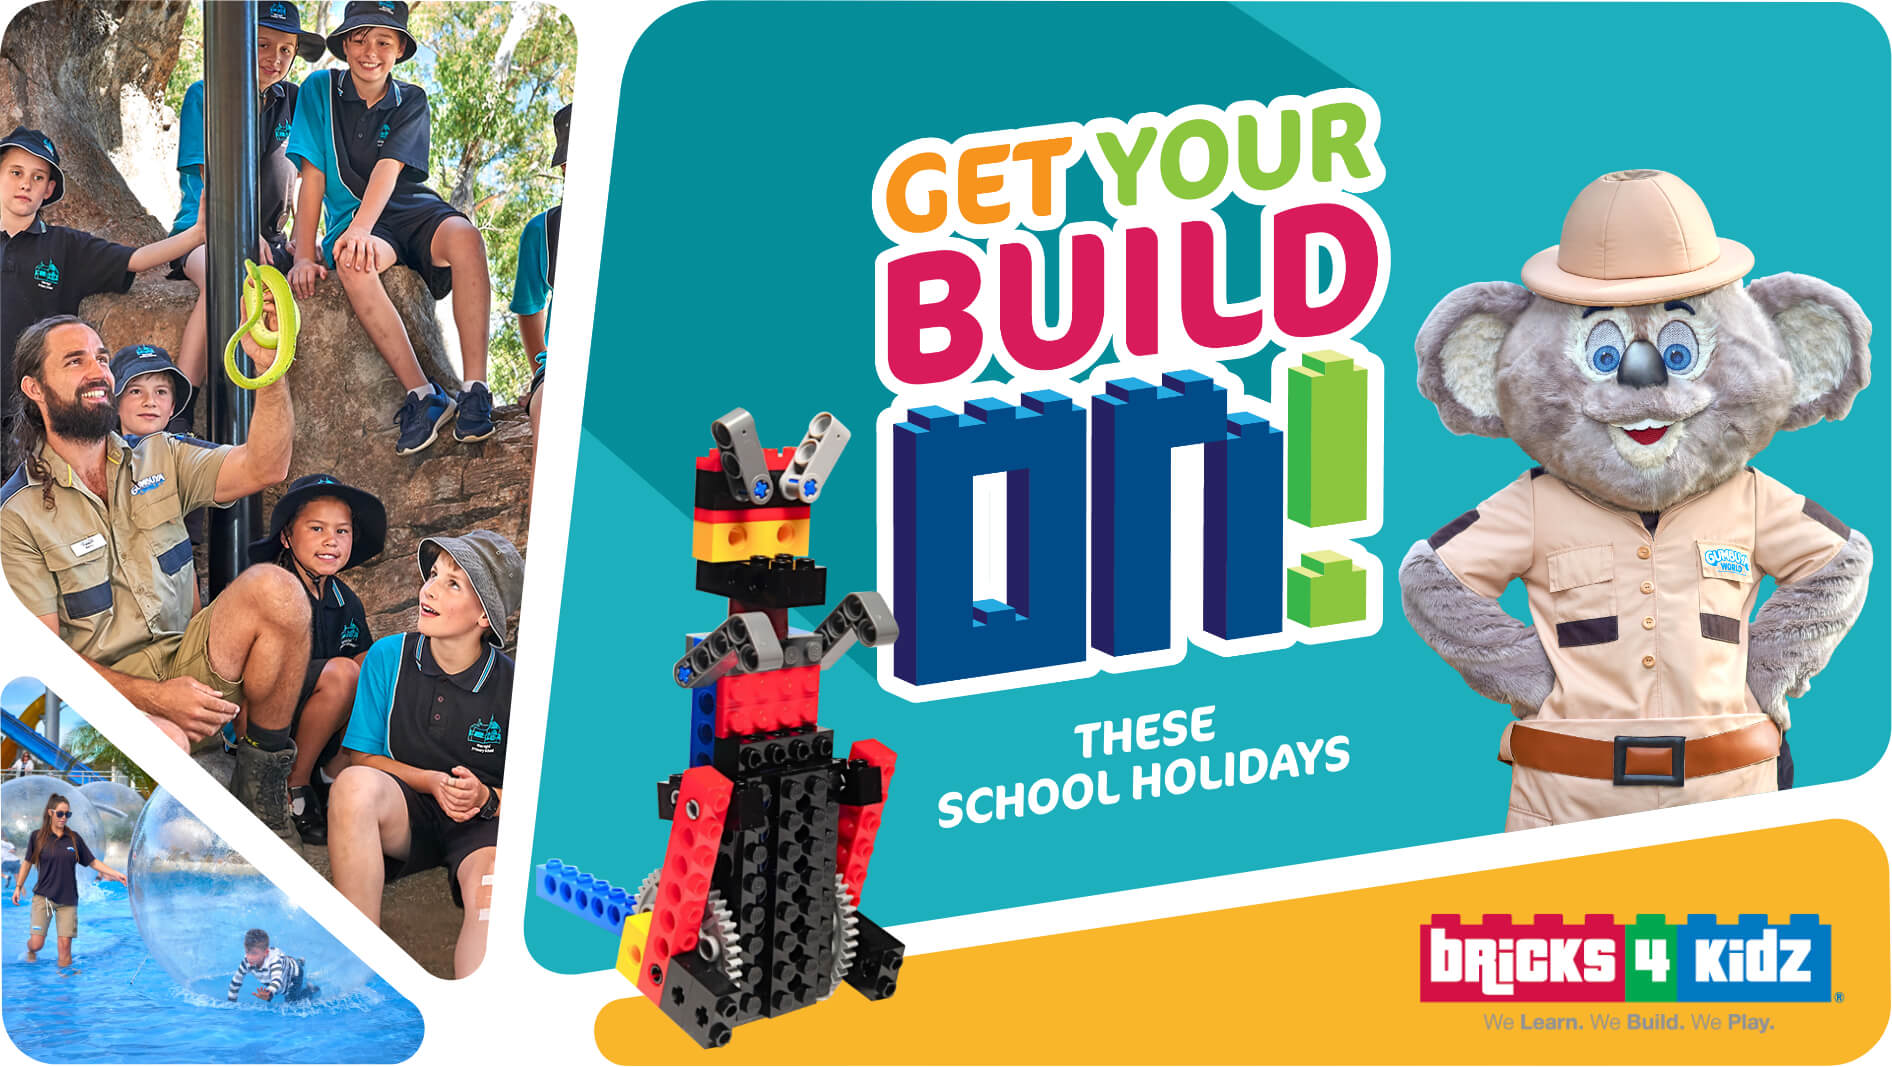 Get Your Build On!